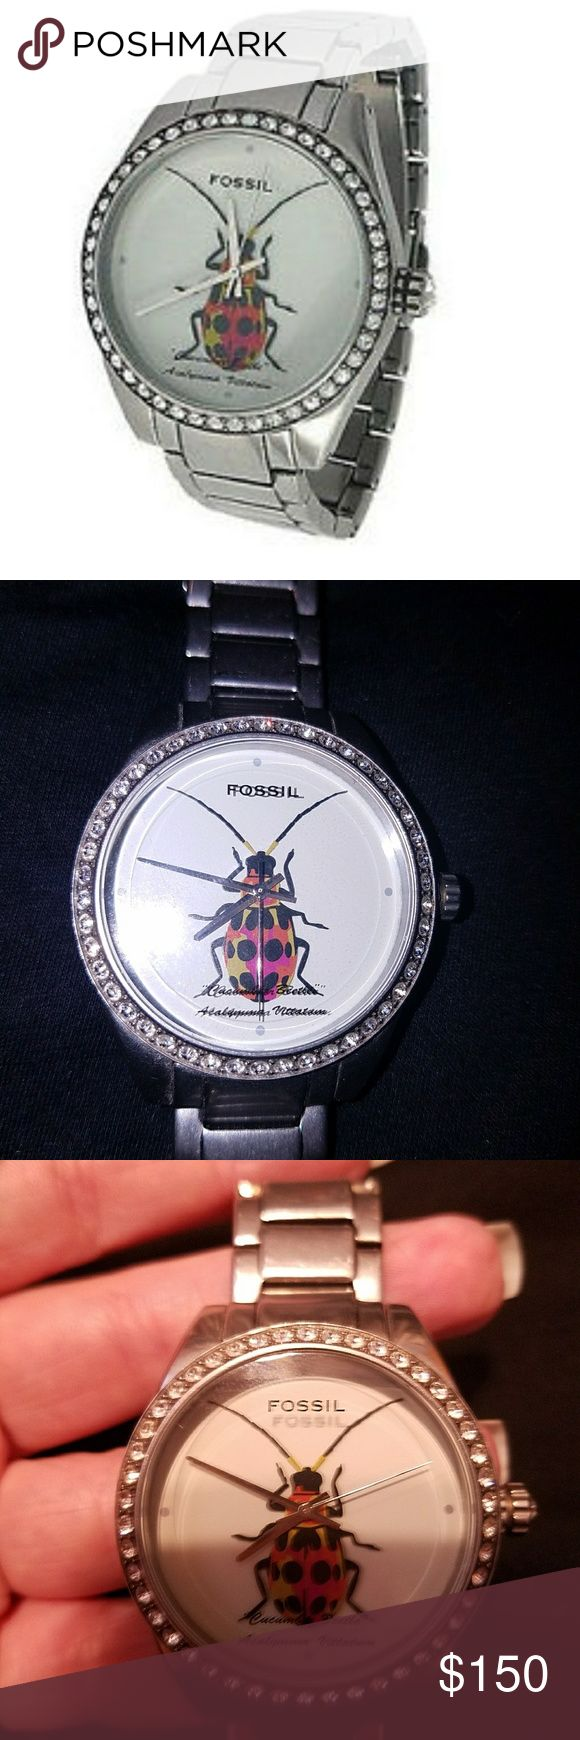 Retired Cucumber Beetle Fossil Watch 💖 A delightful hybrid of masculine and feminine qualities 💖  Stainless steel, boyfriend-style watch with  rhinestone details on face and setting knob.  All rhinestones in tact.  Center of face features the cucumber beetle and its scientific name.  Watch band does have some dulling and wear.   🌻New battery purchased and put in by jeweler on 7/8/17. Accessories Watches